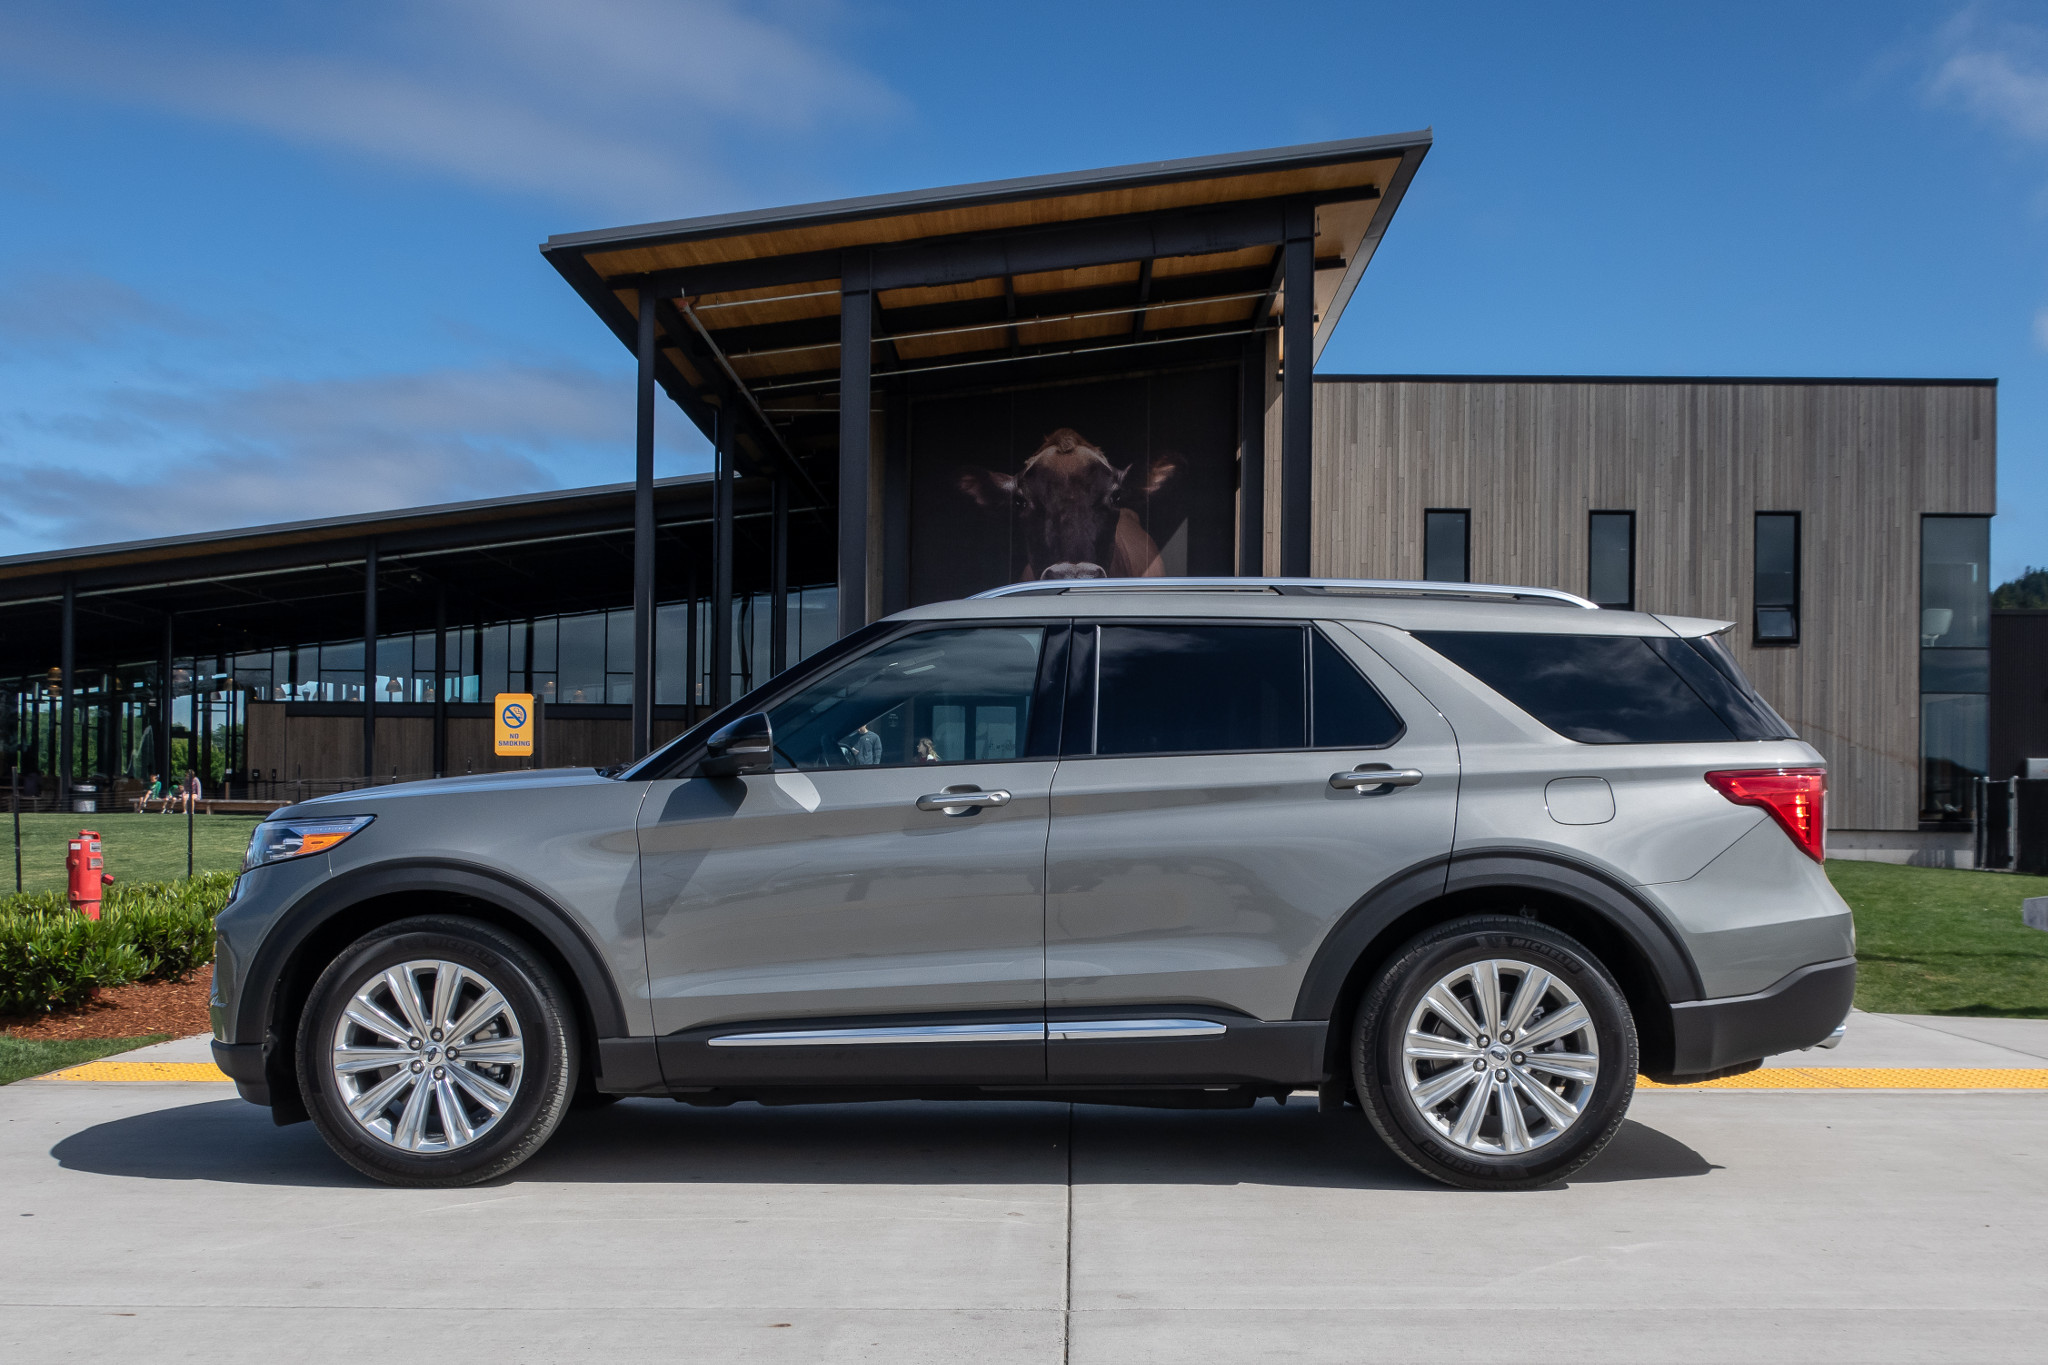 2020 Ford Explorer: Everything You Need to Know